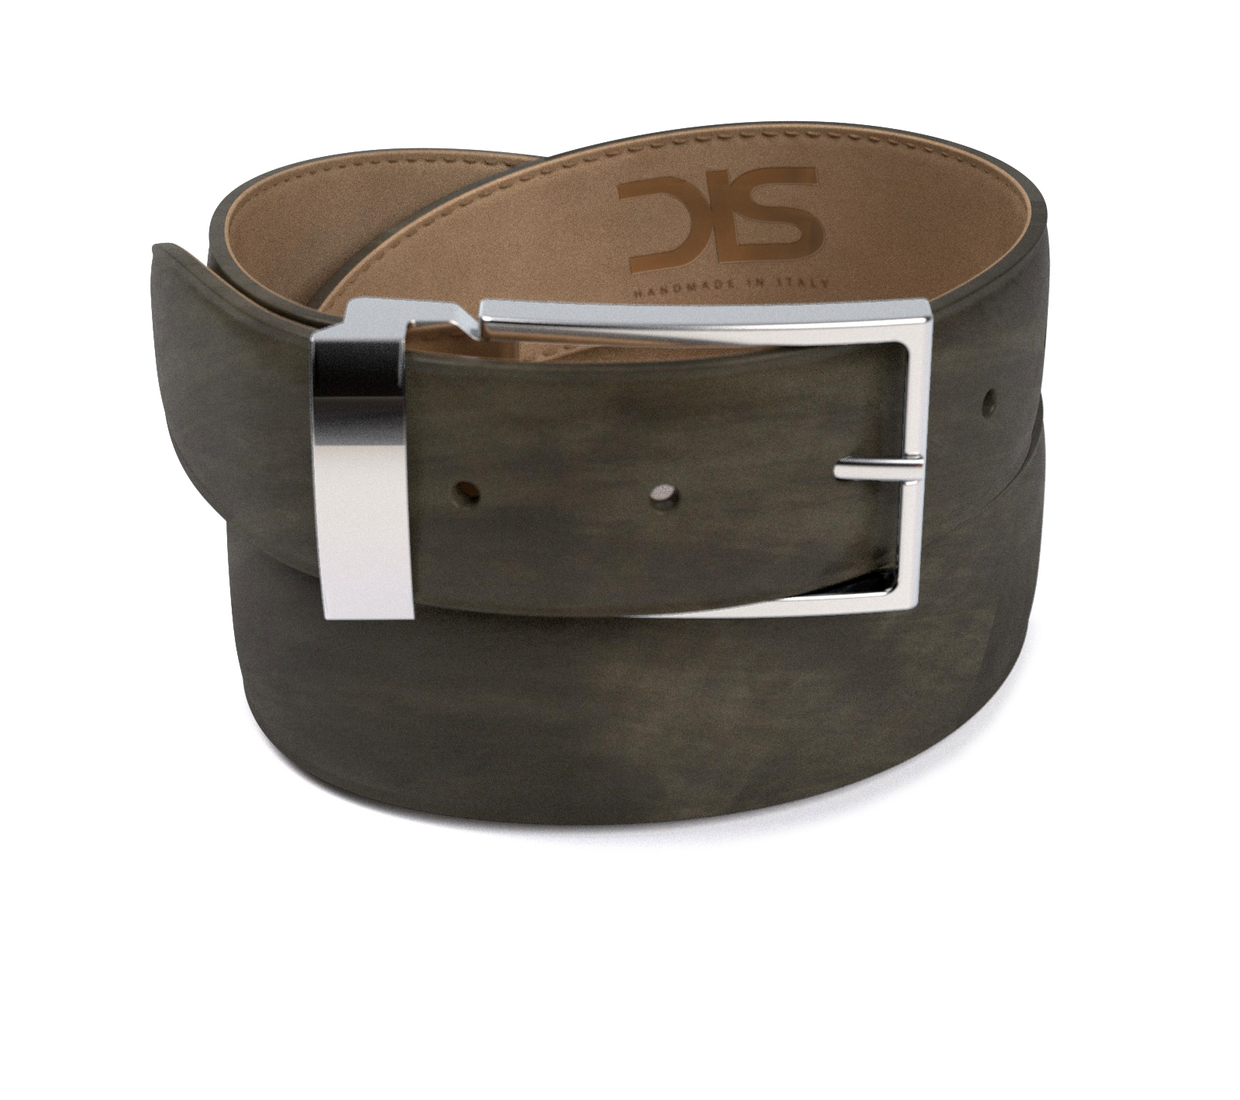 Grey deco leather belt with silver buckle